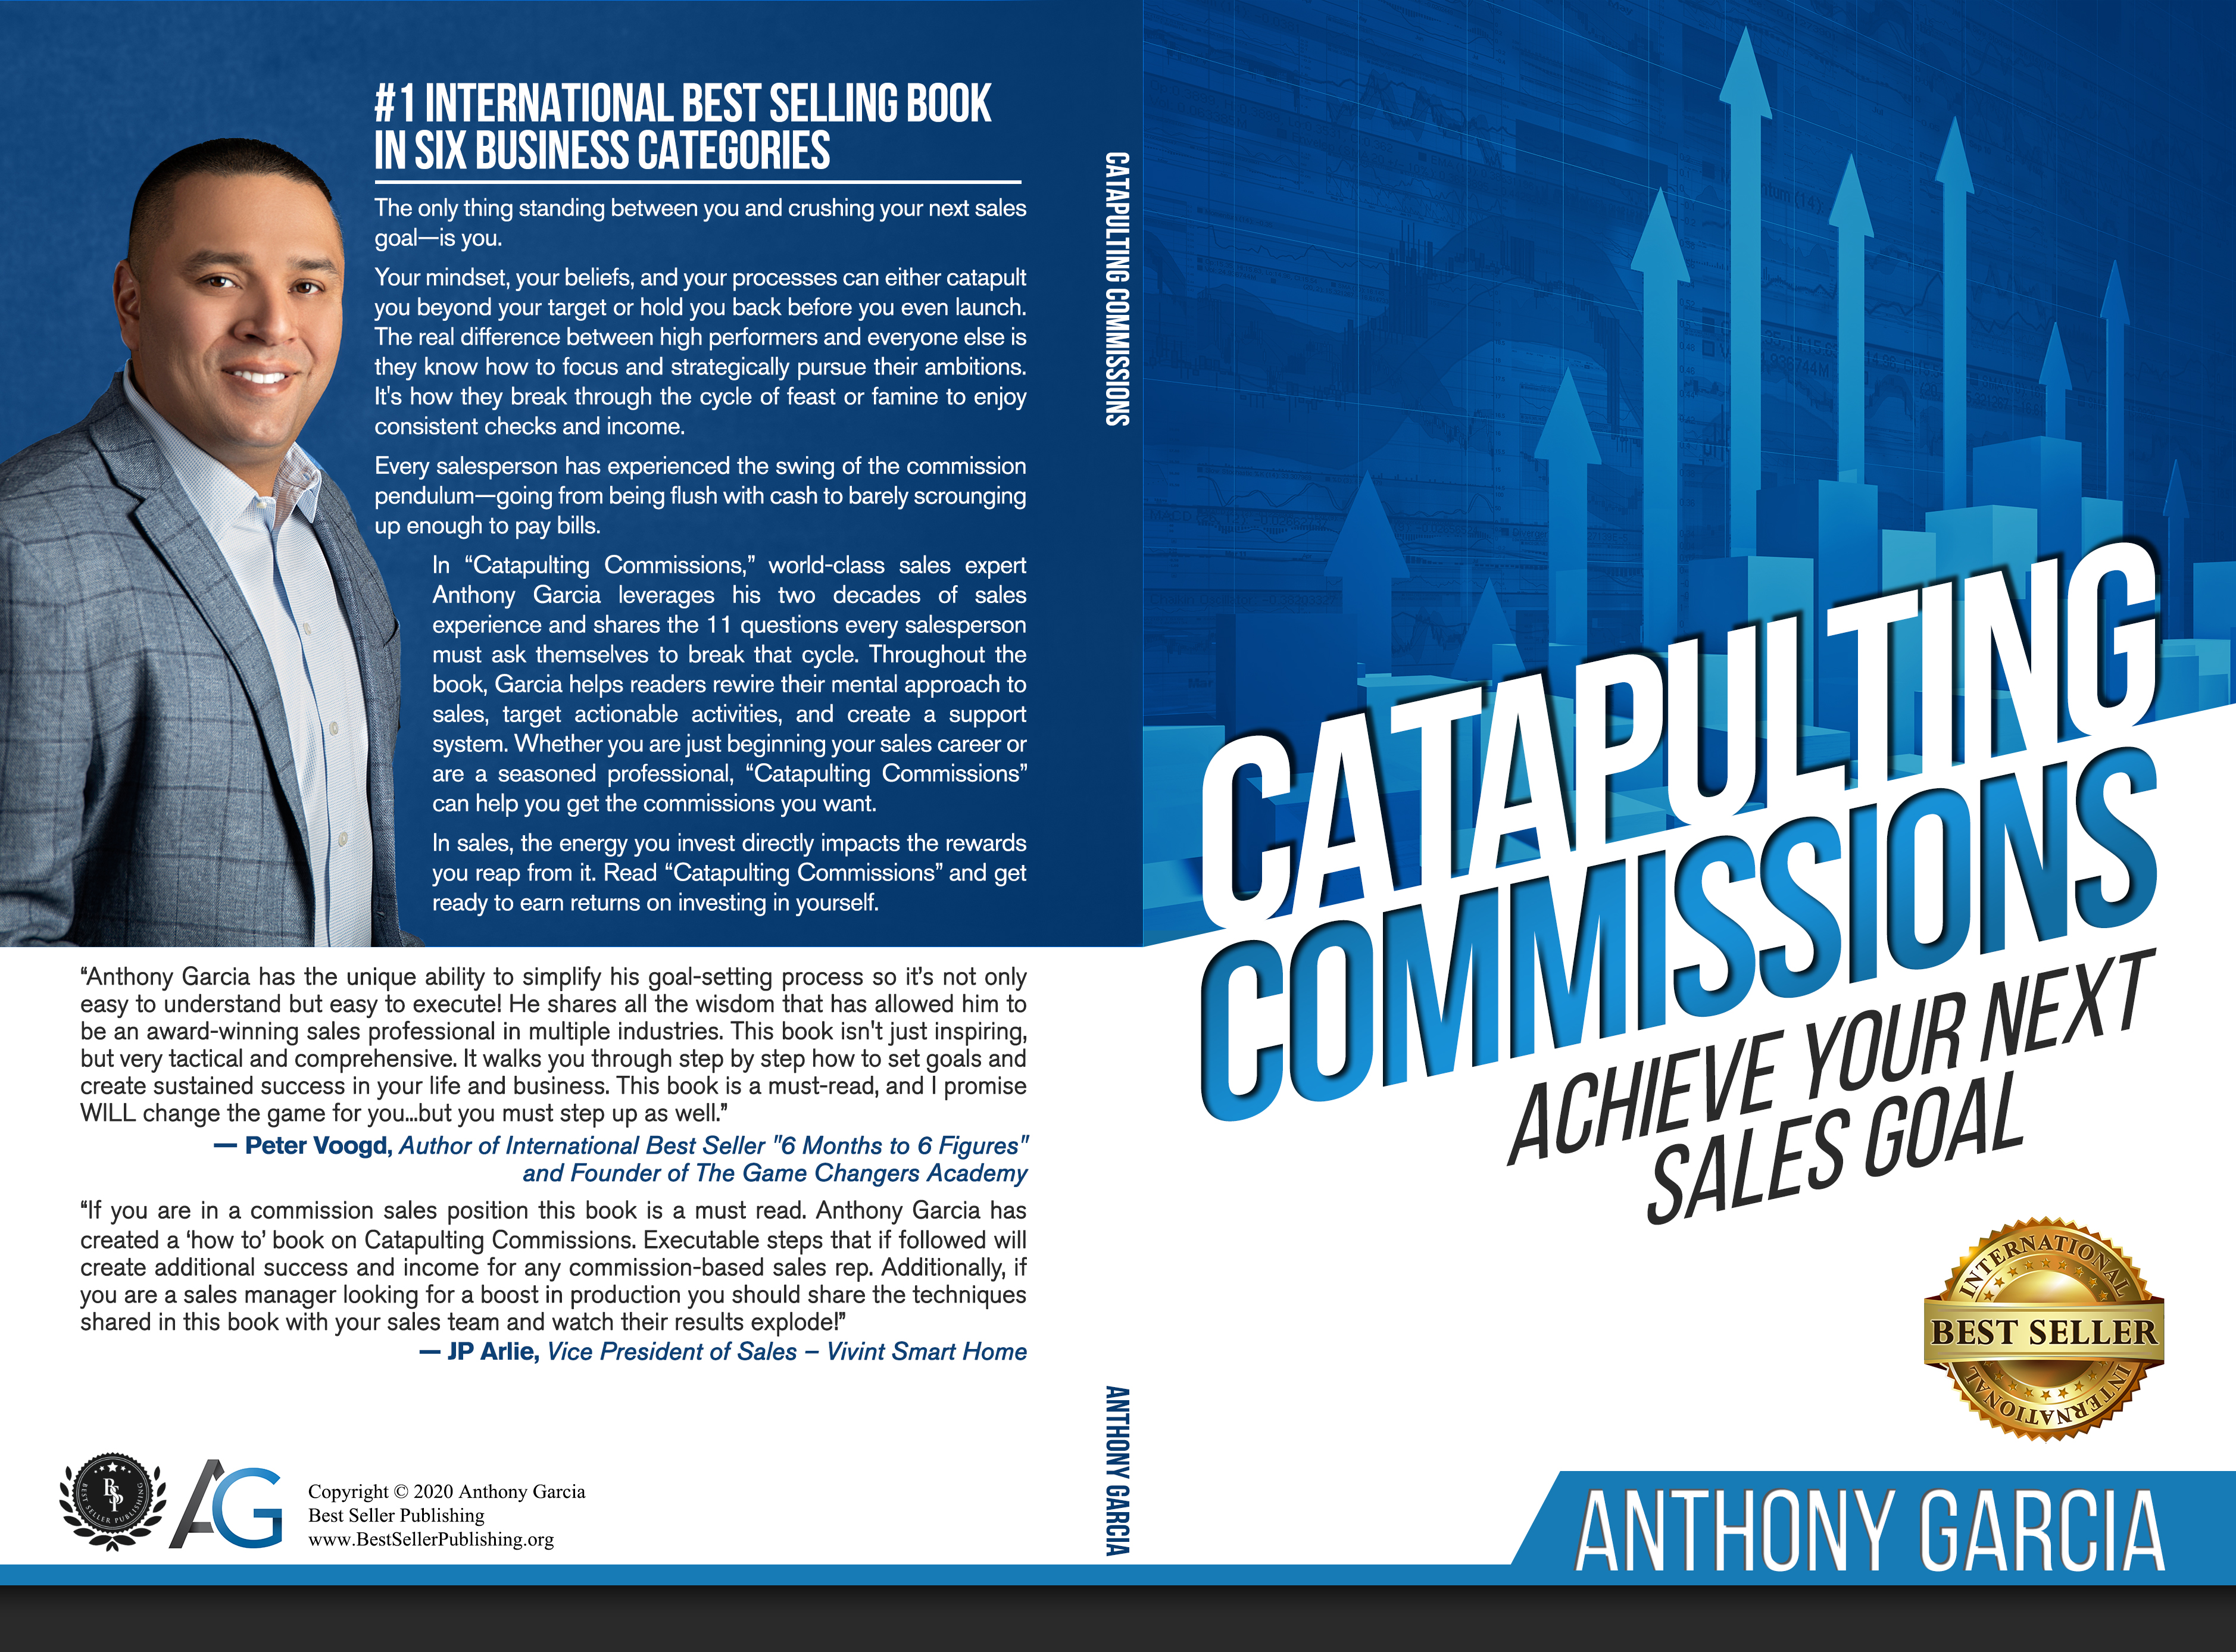 Ranked As International Best-Seller On Amazon, Anthony Garcia\'s New Book Claims Top Position In Over 6 Countries